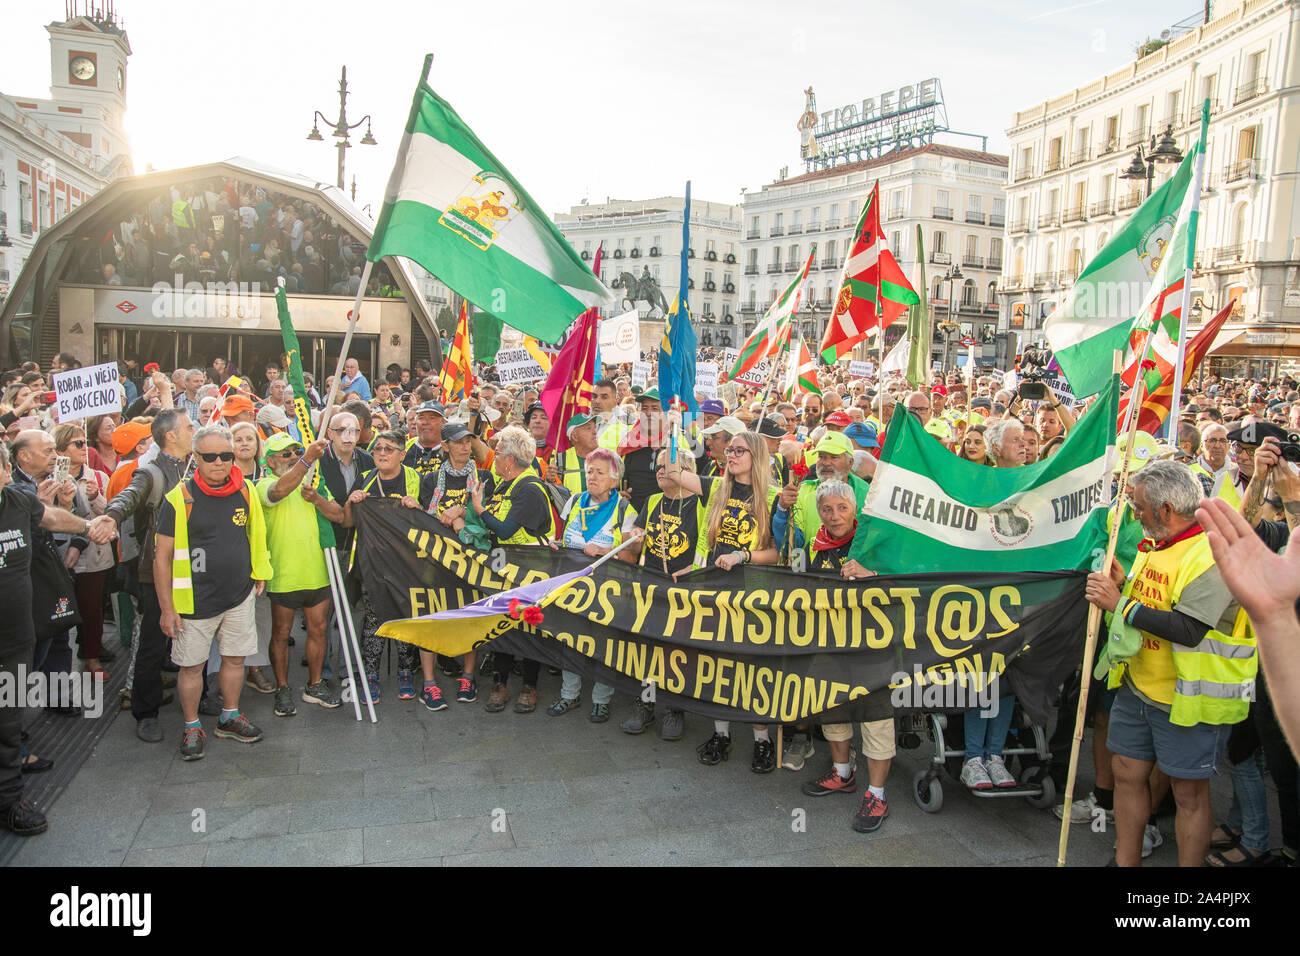 The fight of the pensioners has arrived in Madrid after traveling hundreds of kilometers on foot from the north and south of the country. The demonstr Stock Photo